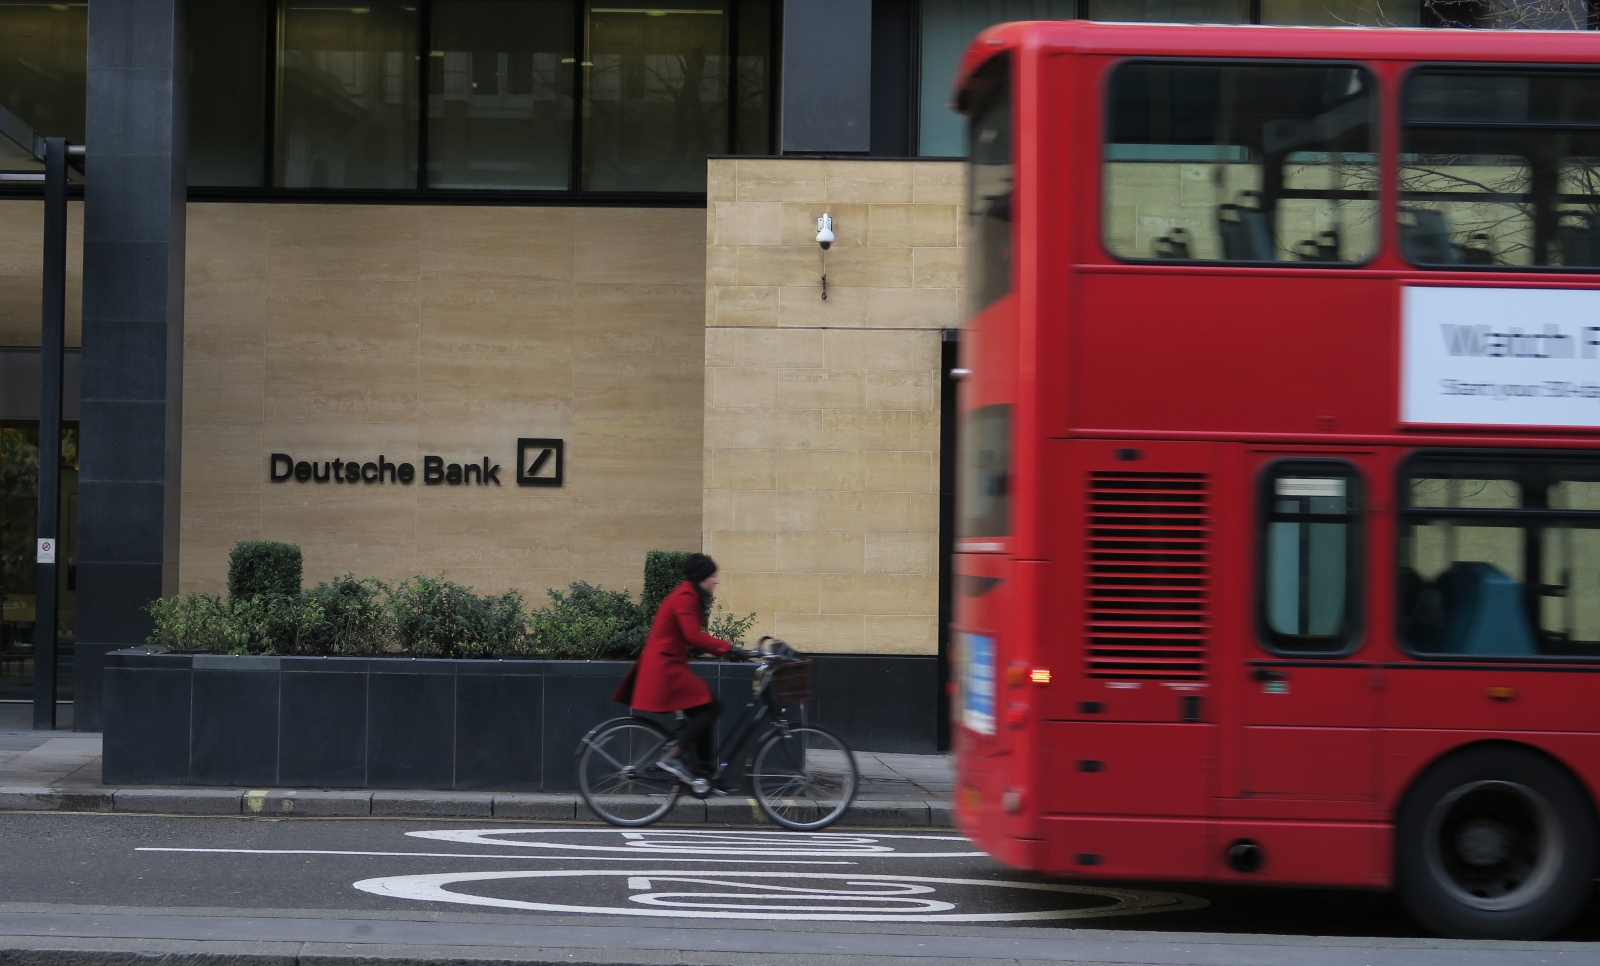 Deutsche Bank Q1 profits rise as legal costs dwindle